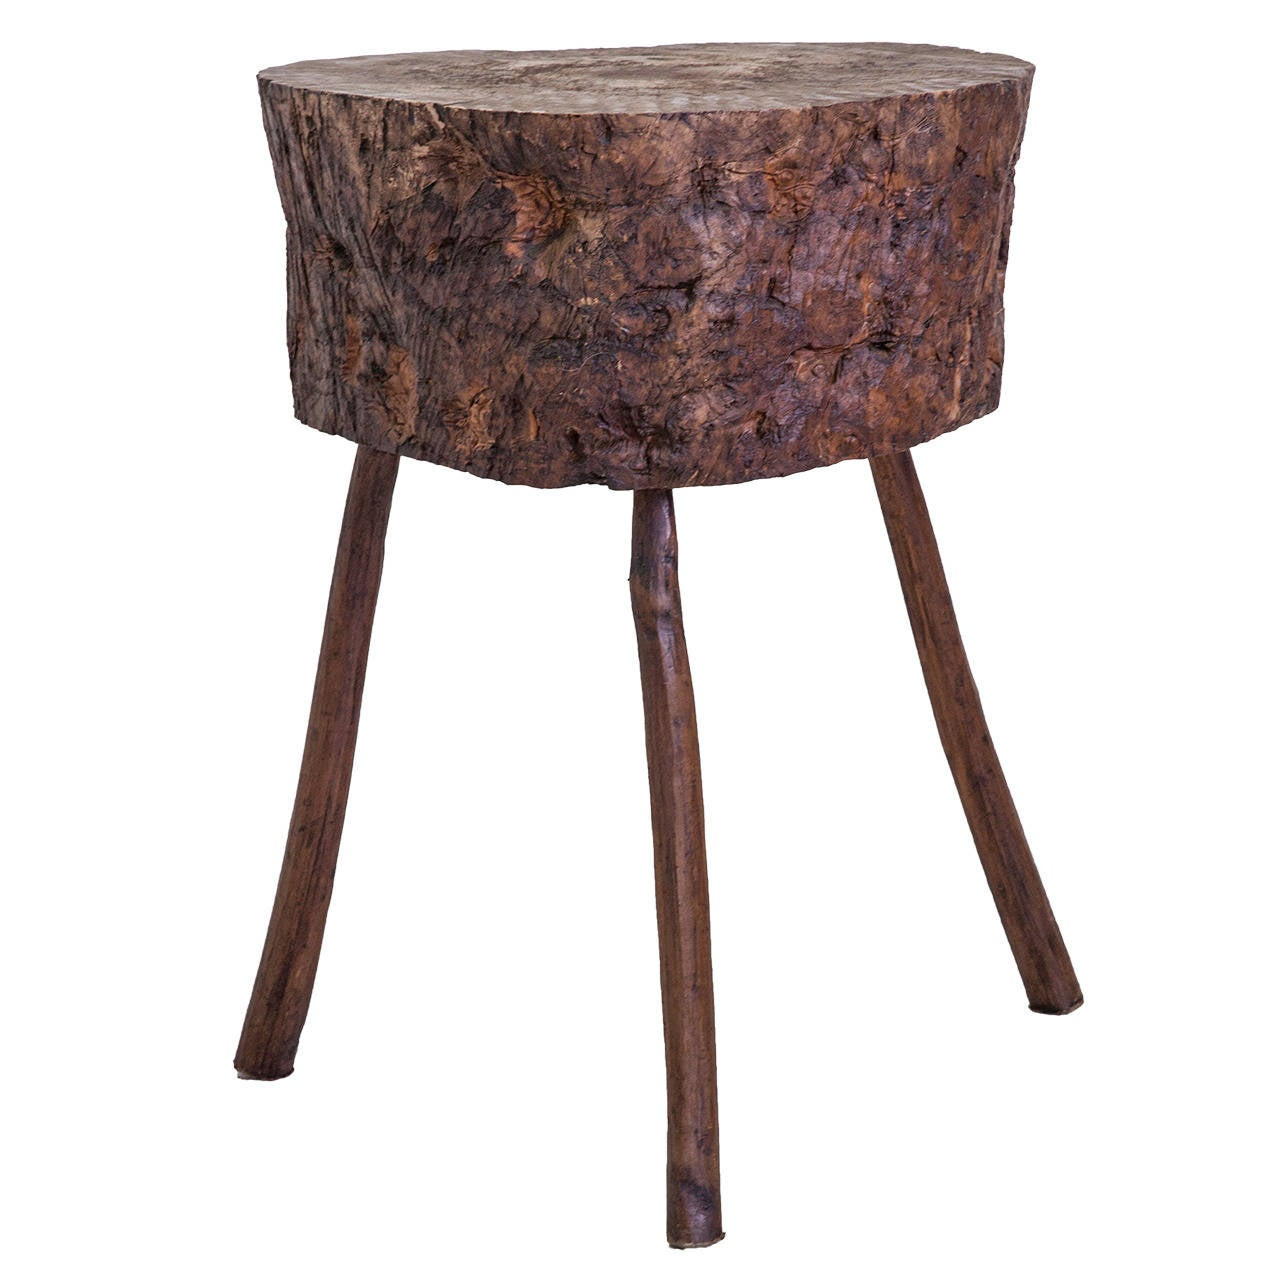 Tall Primitive Standing Butcher Block Or Side Table From